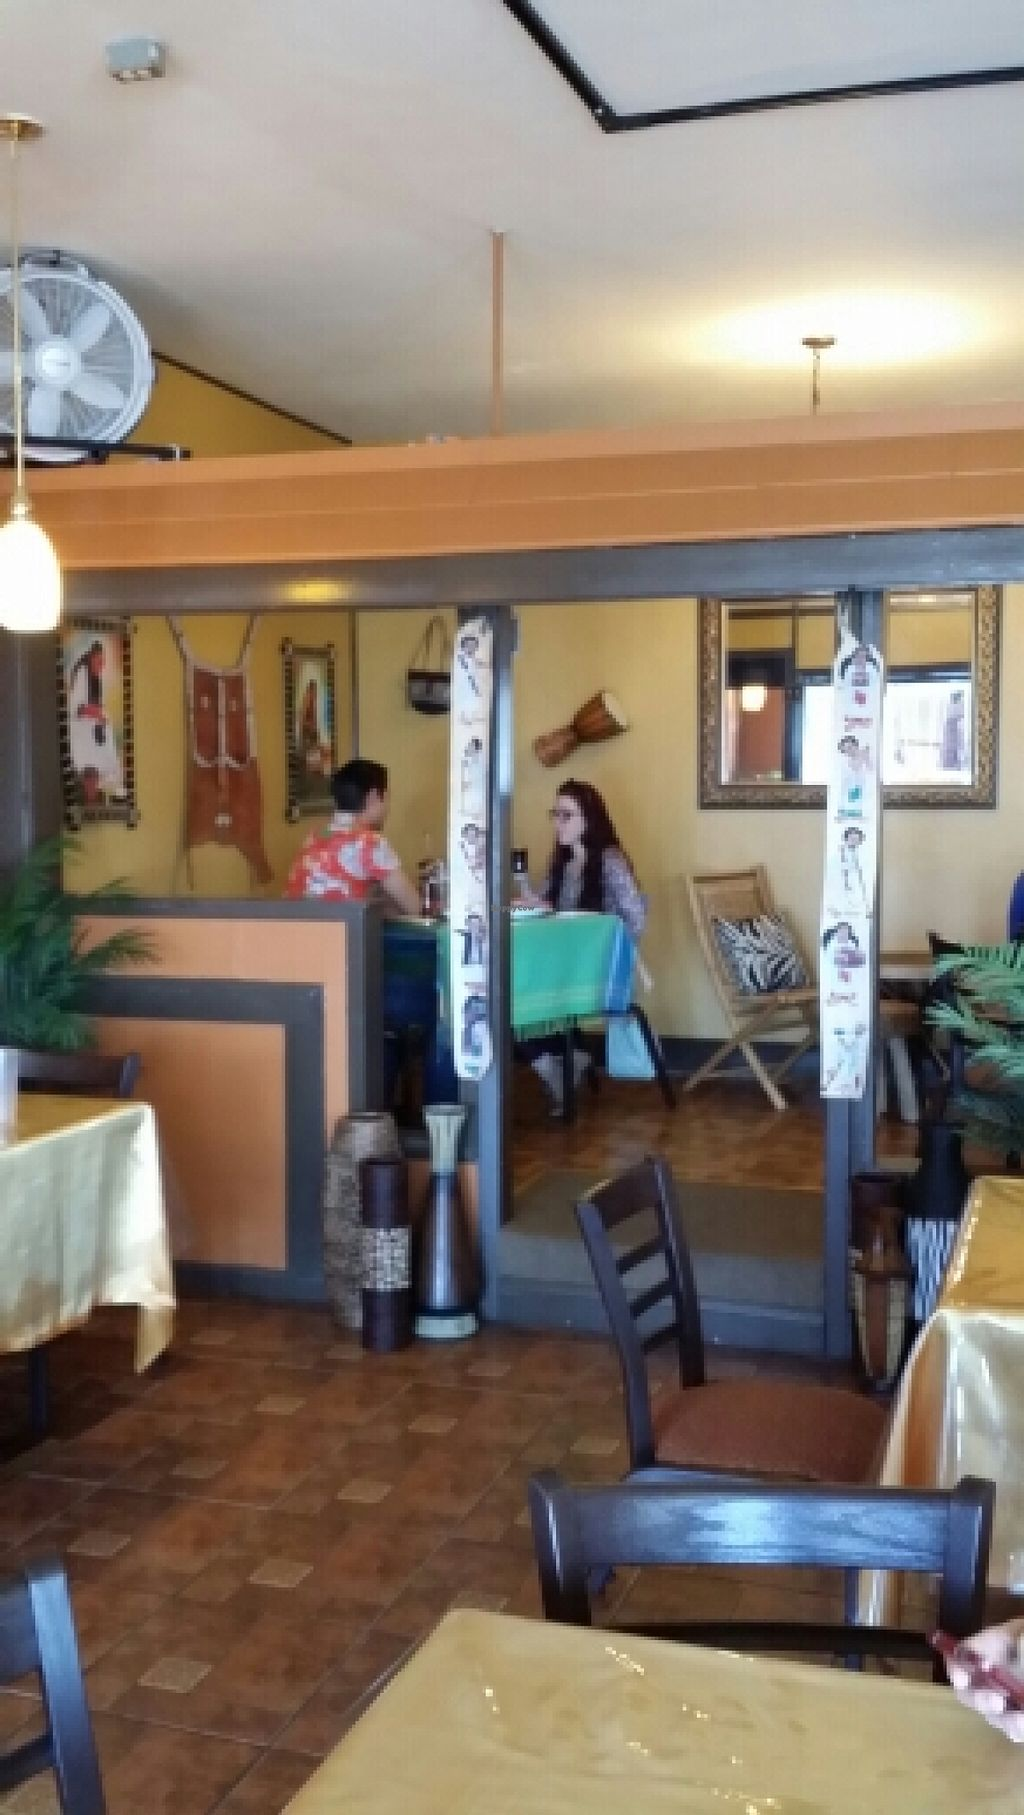 """Photo of Fasika Ethiopian Restaurant  by <a href=""""/members/profile/catbone"""">catbone</a> <br/>Quaint, semi-private platform seating <br/> March 16, 2016  - <a href='/contact/abuse/image/54385/140182'>Report</a>"""